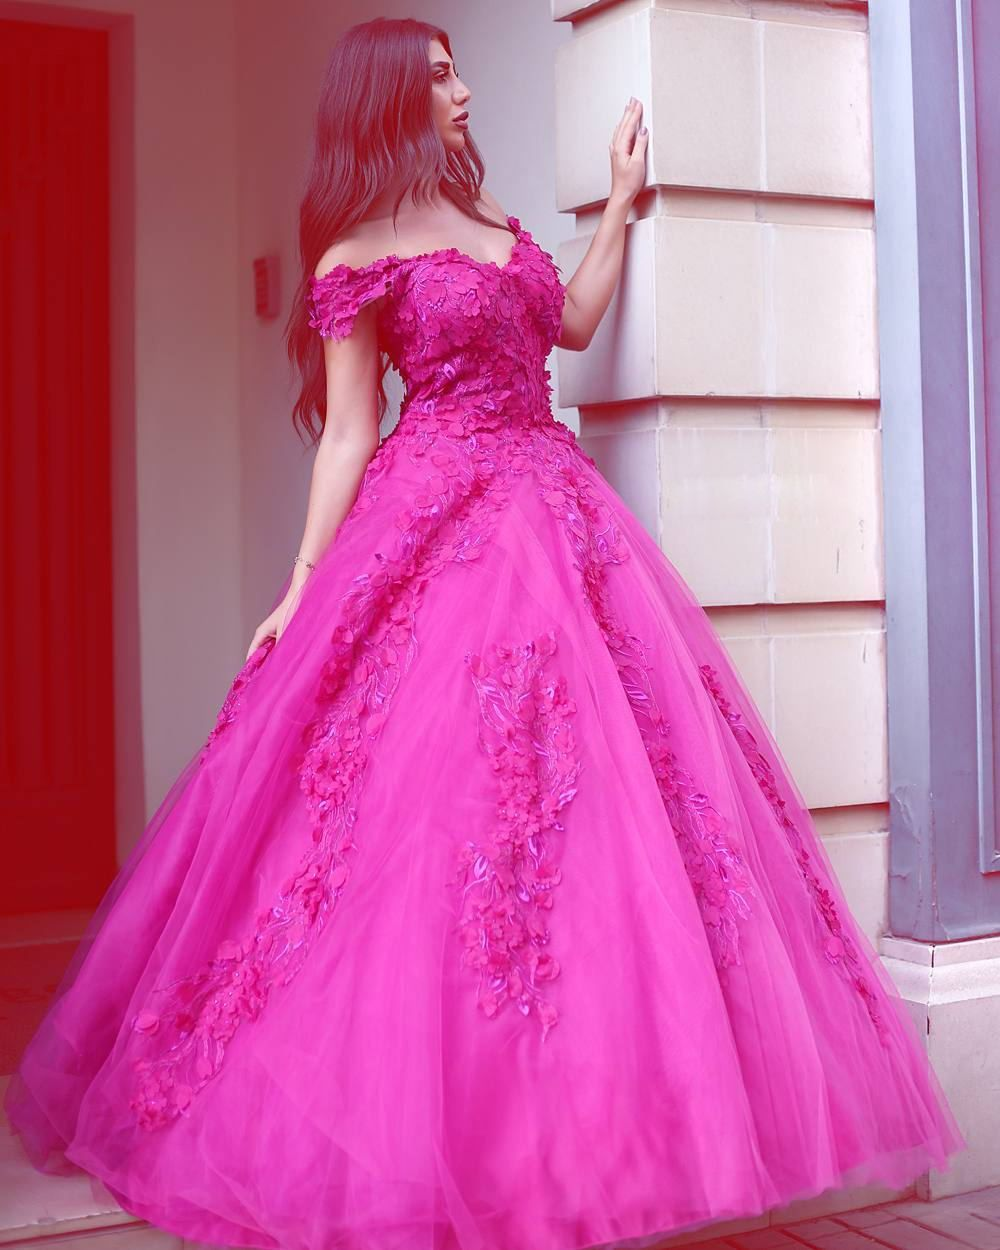 c17db02ba7 Tulle Off Shoulder Ball Gown Prom Dresses with Lace Appliques Long  Quinceanera Dresses Bridal Gowns